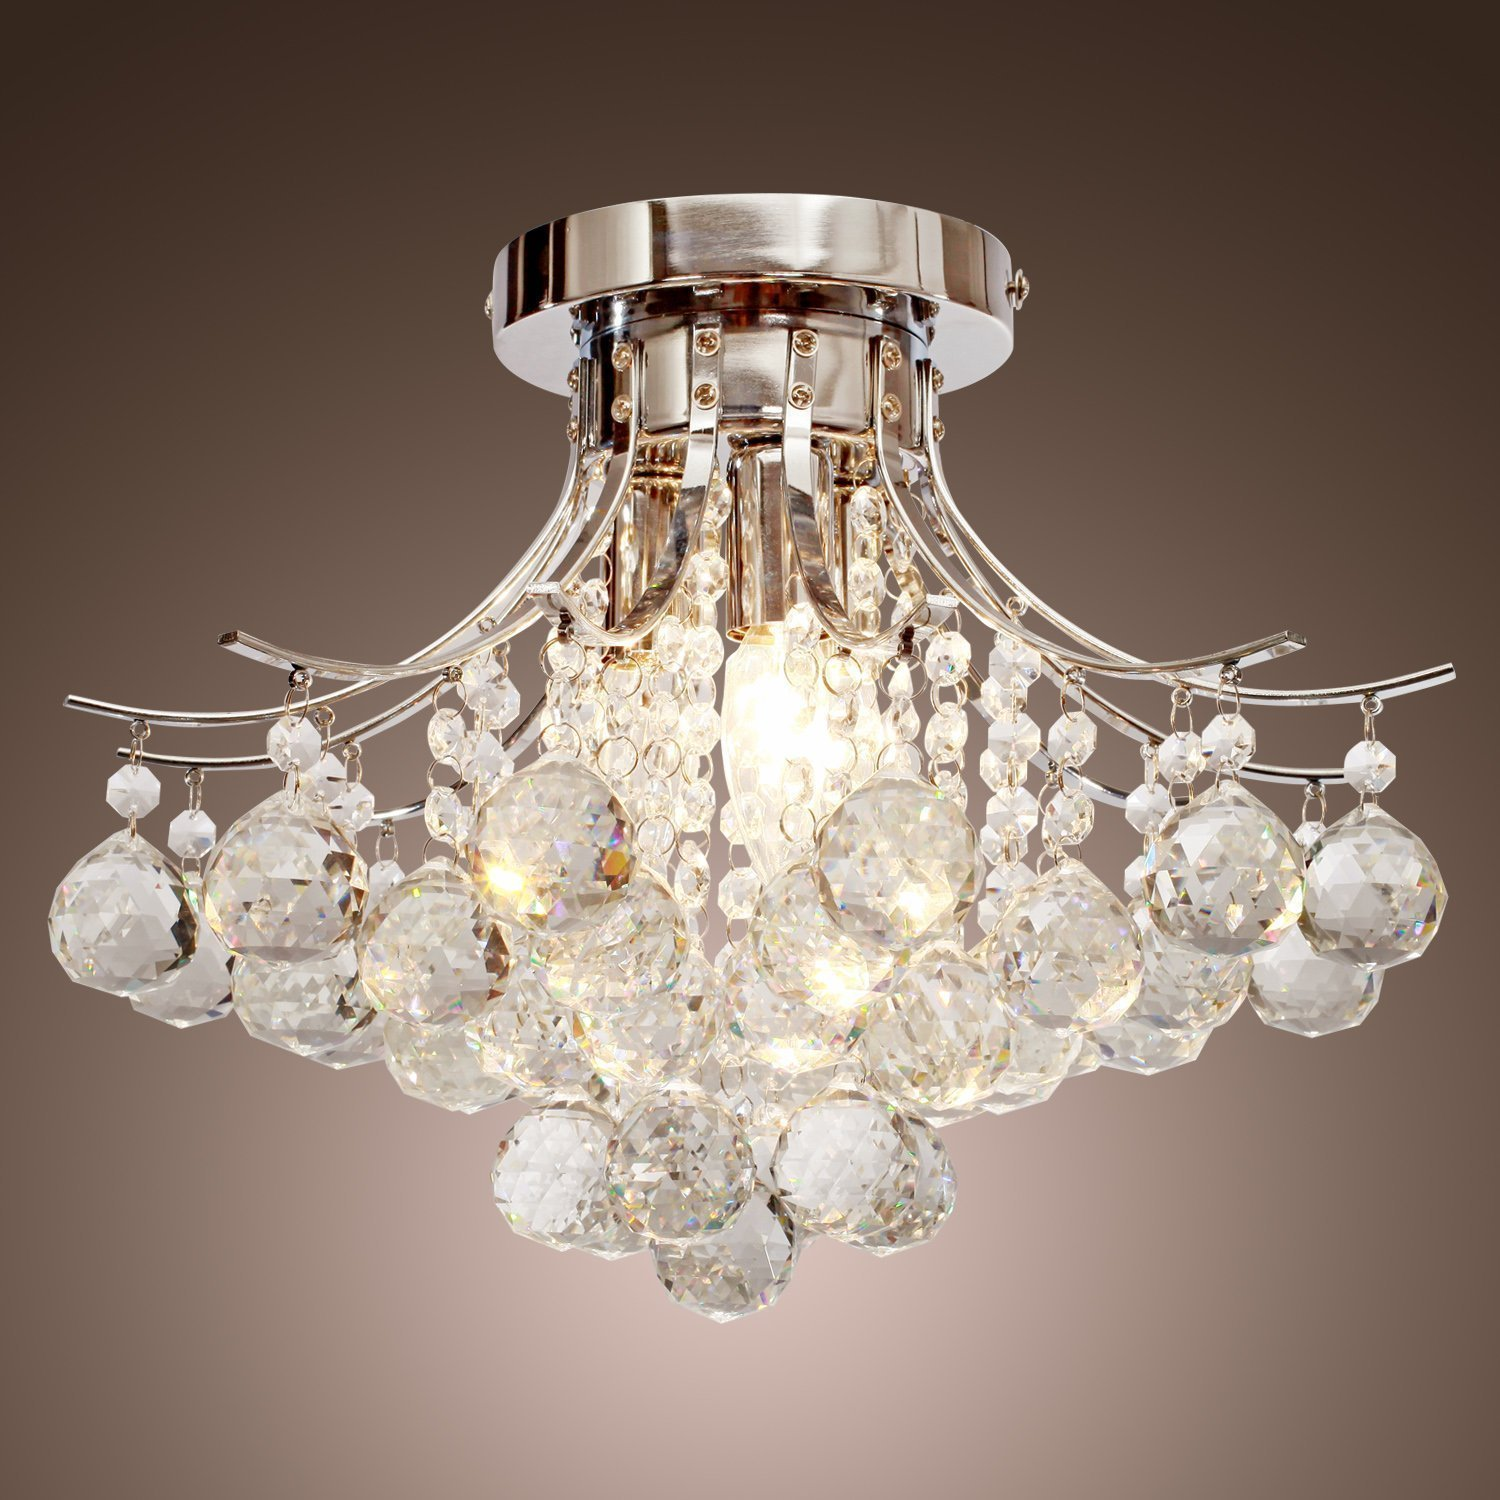 Beautiful LOCO Chrome Finish Crystal Chandelier with lights Mini Style Flush Mount Ceiling Light Fixture